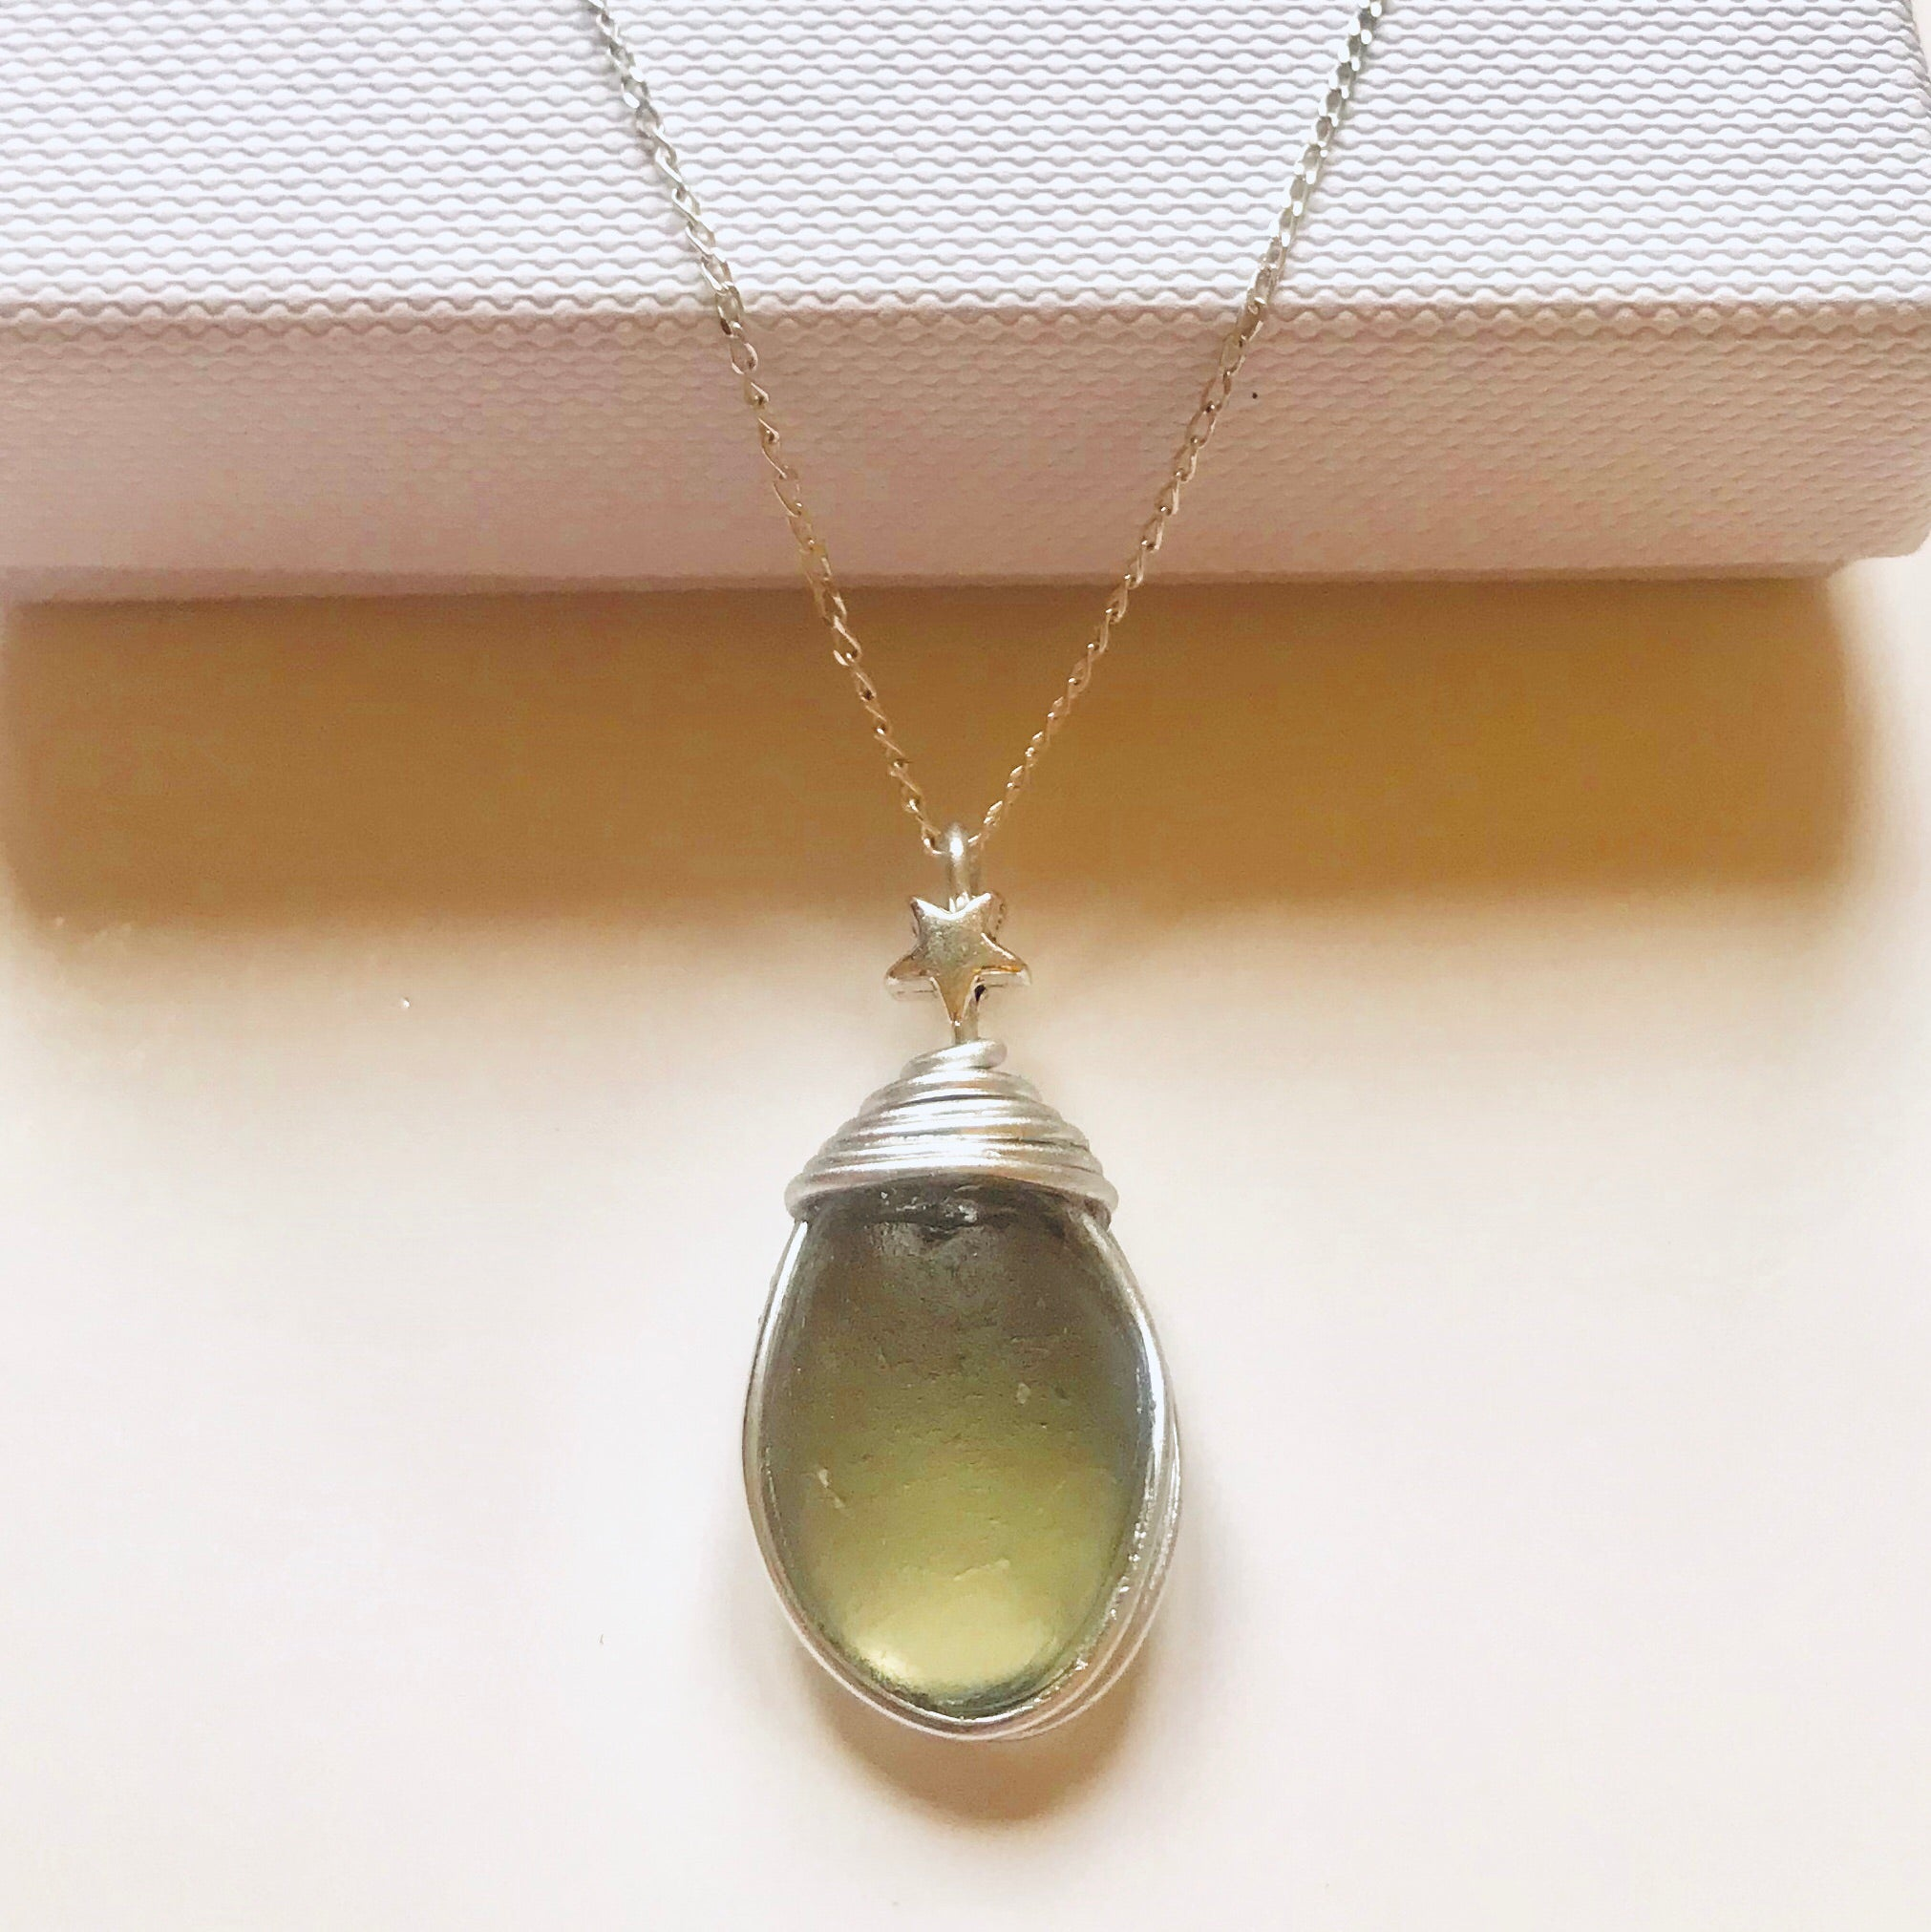 "Pale Dusky Green Seaham Sea Glass Pendant On a 20"" Sterling Silver Chain"